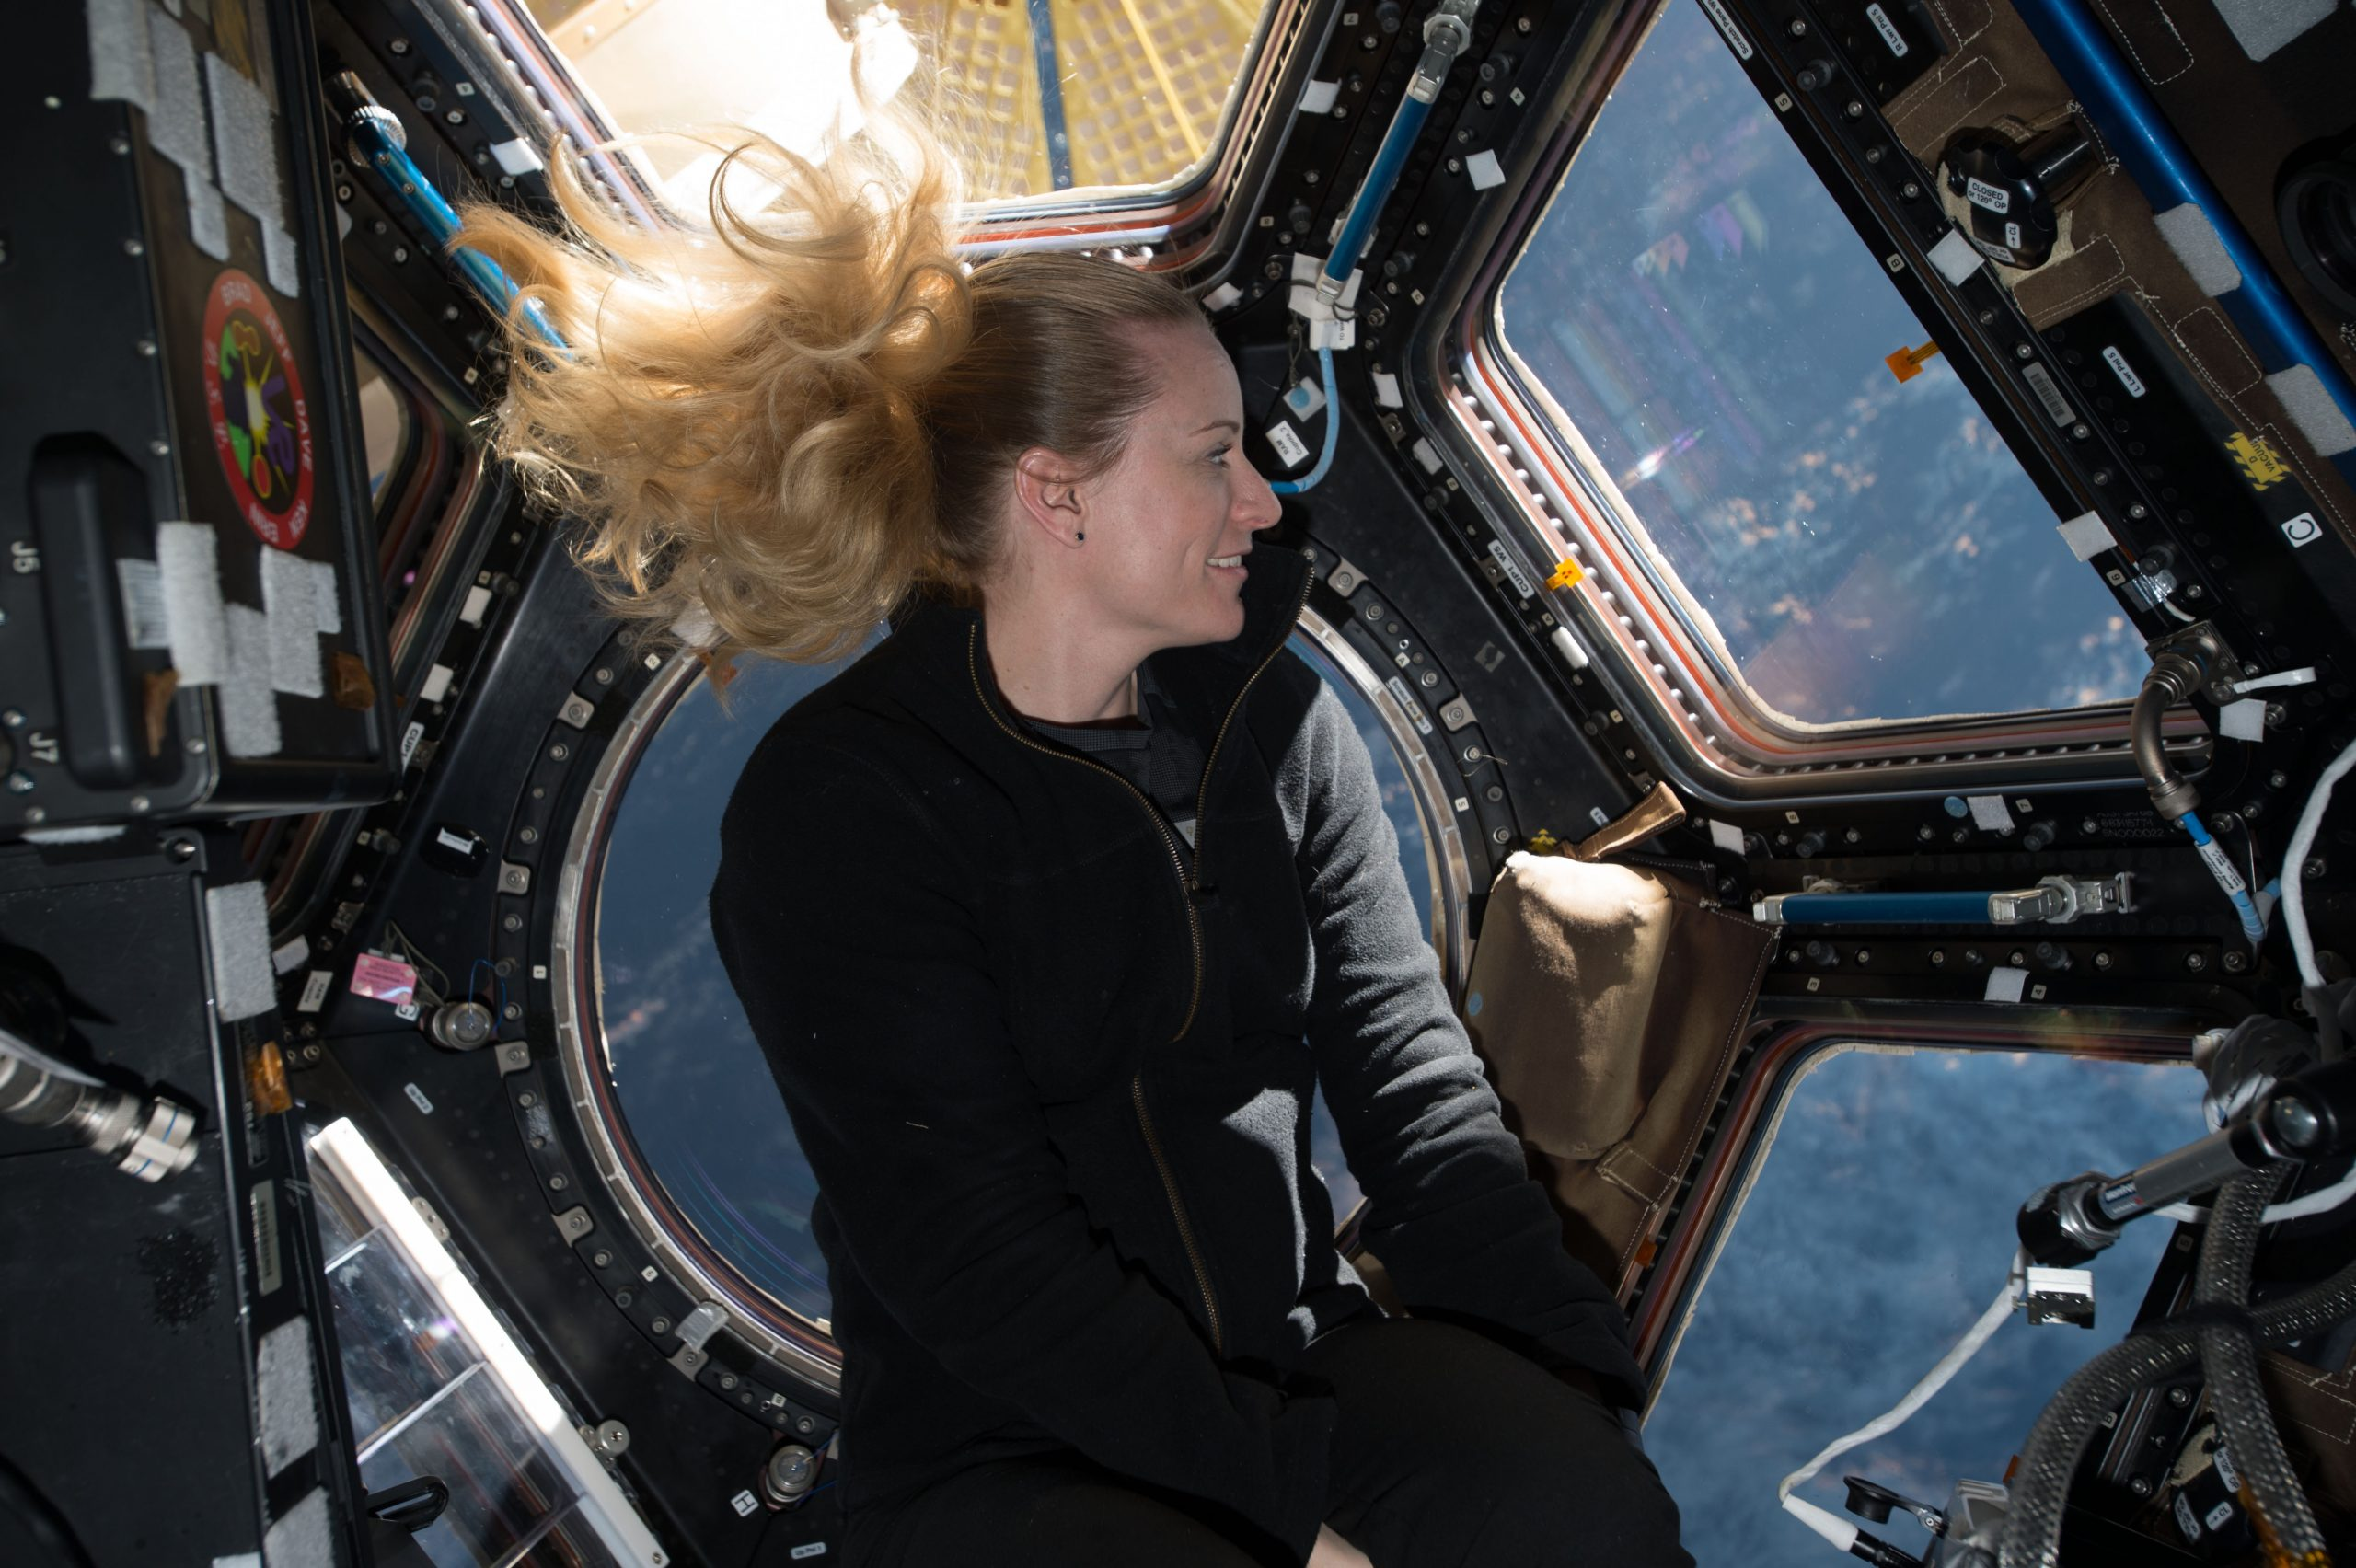 NASA Astronaut Kate Rubins Available for Interviews Before Her Return to Space